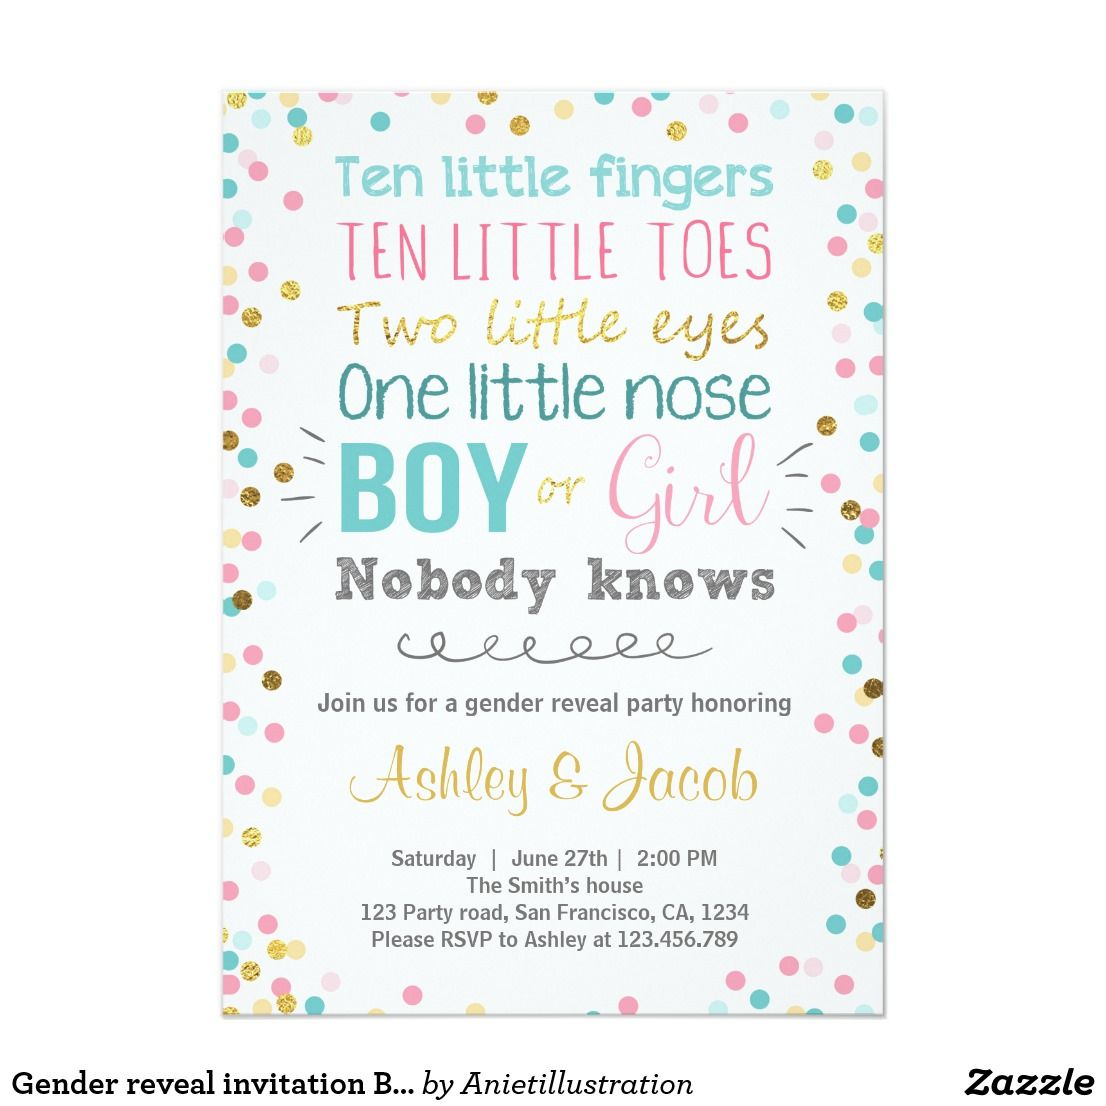 Gender reveal invitation Baby shower Boy or Girl Pinterest